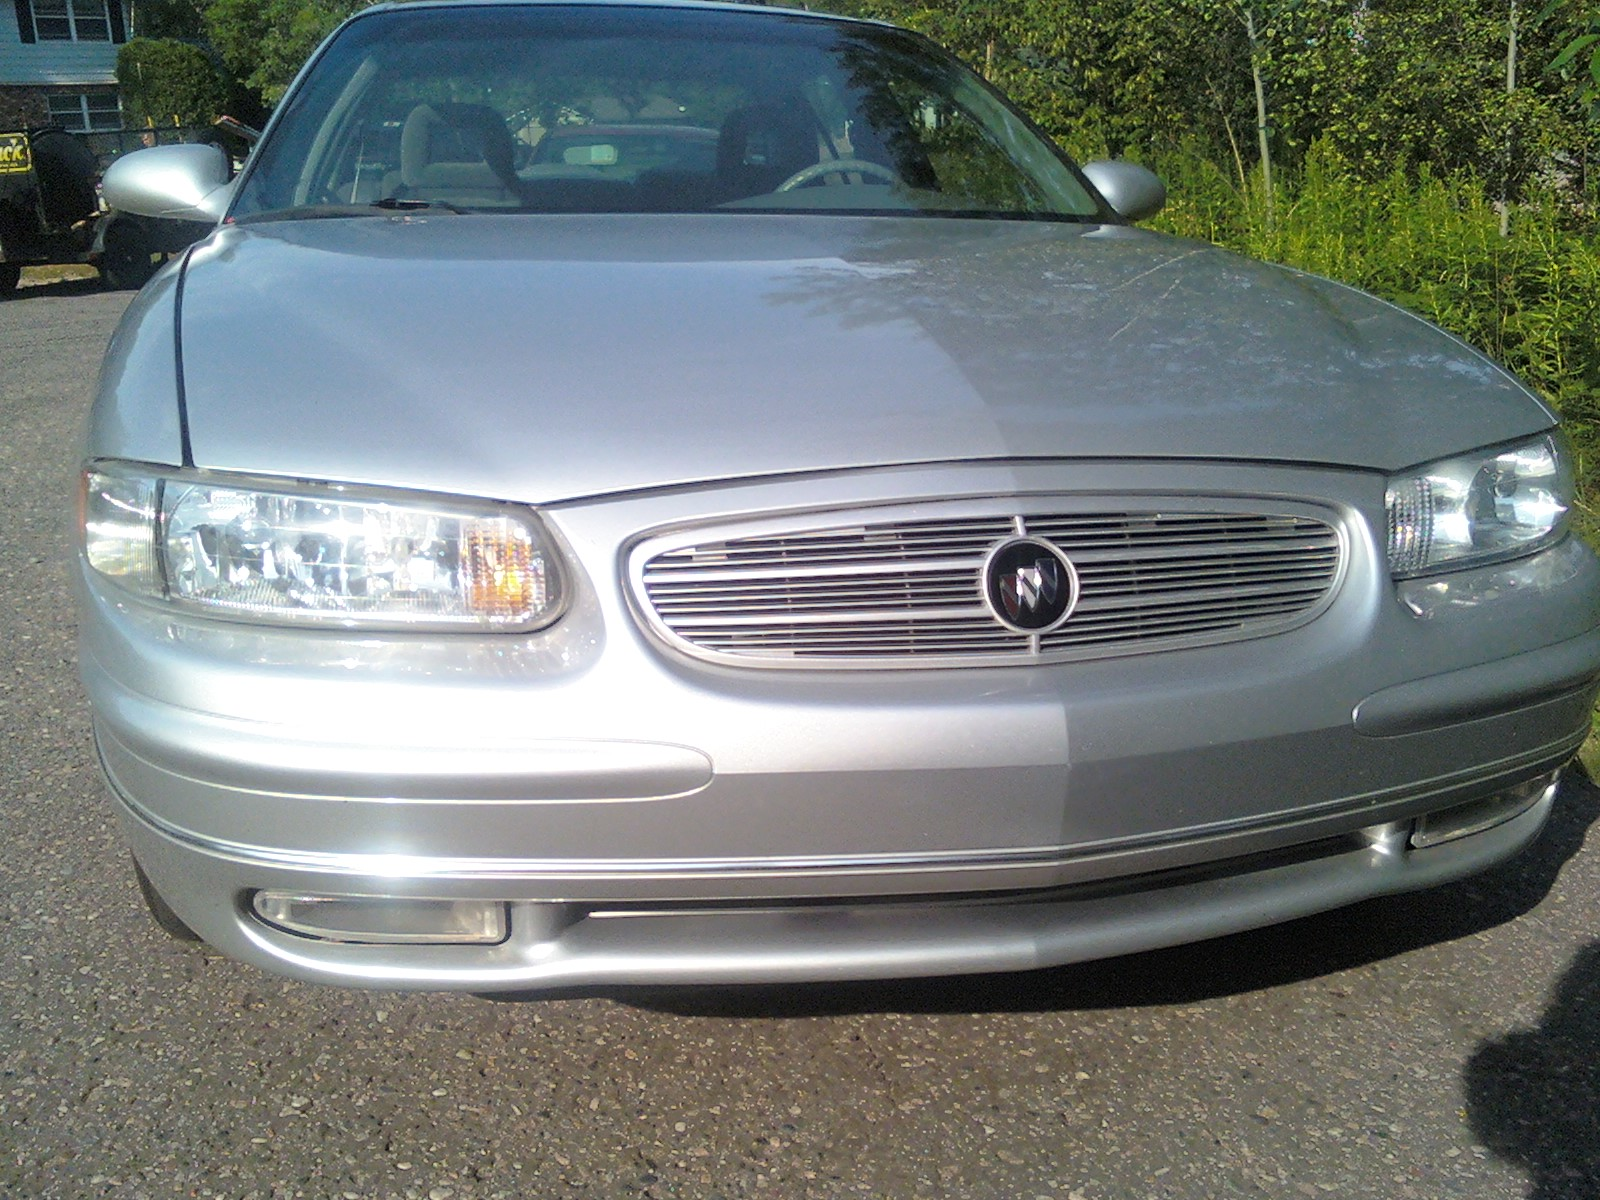 2000 Buick Regal - Pictures